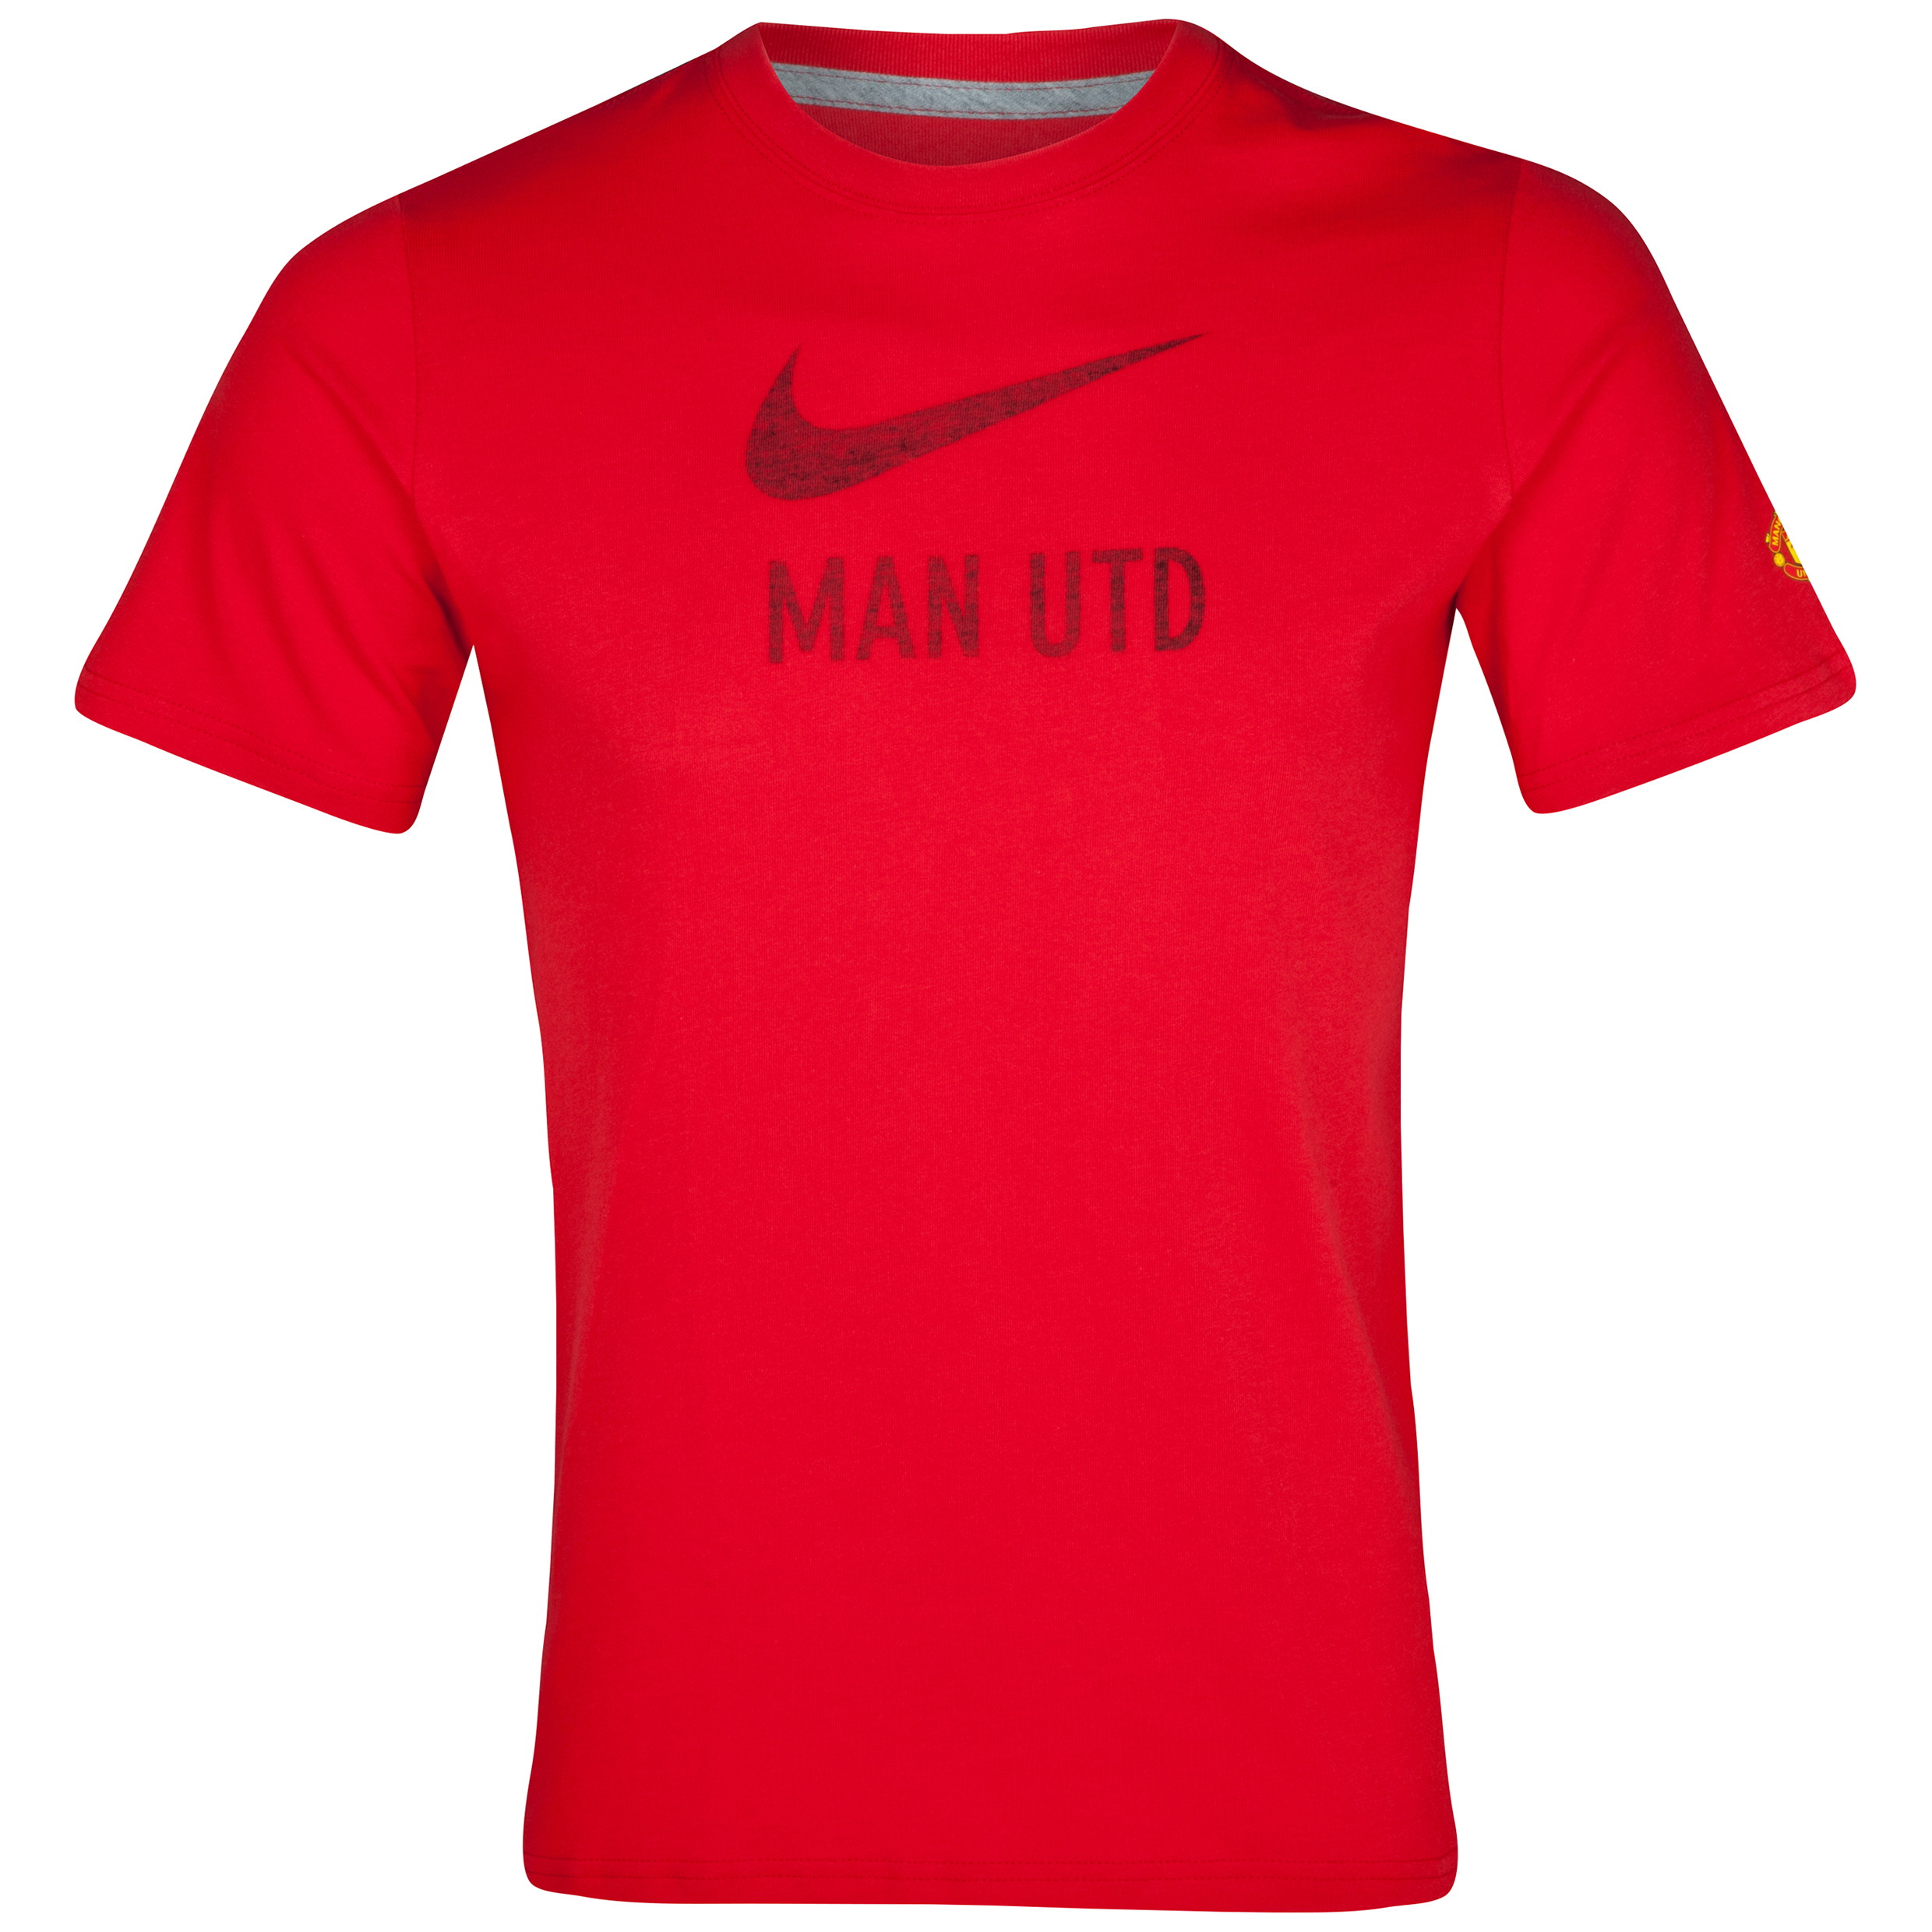 Manchester United Basic T-Shirt - Diablo Red/Dk Grey Heather - Kids